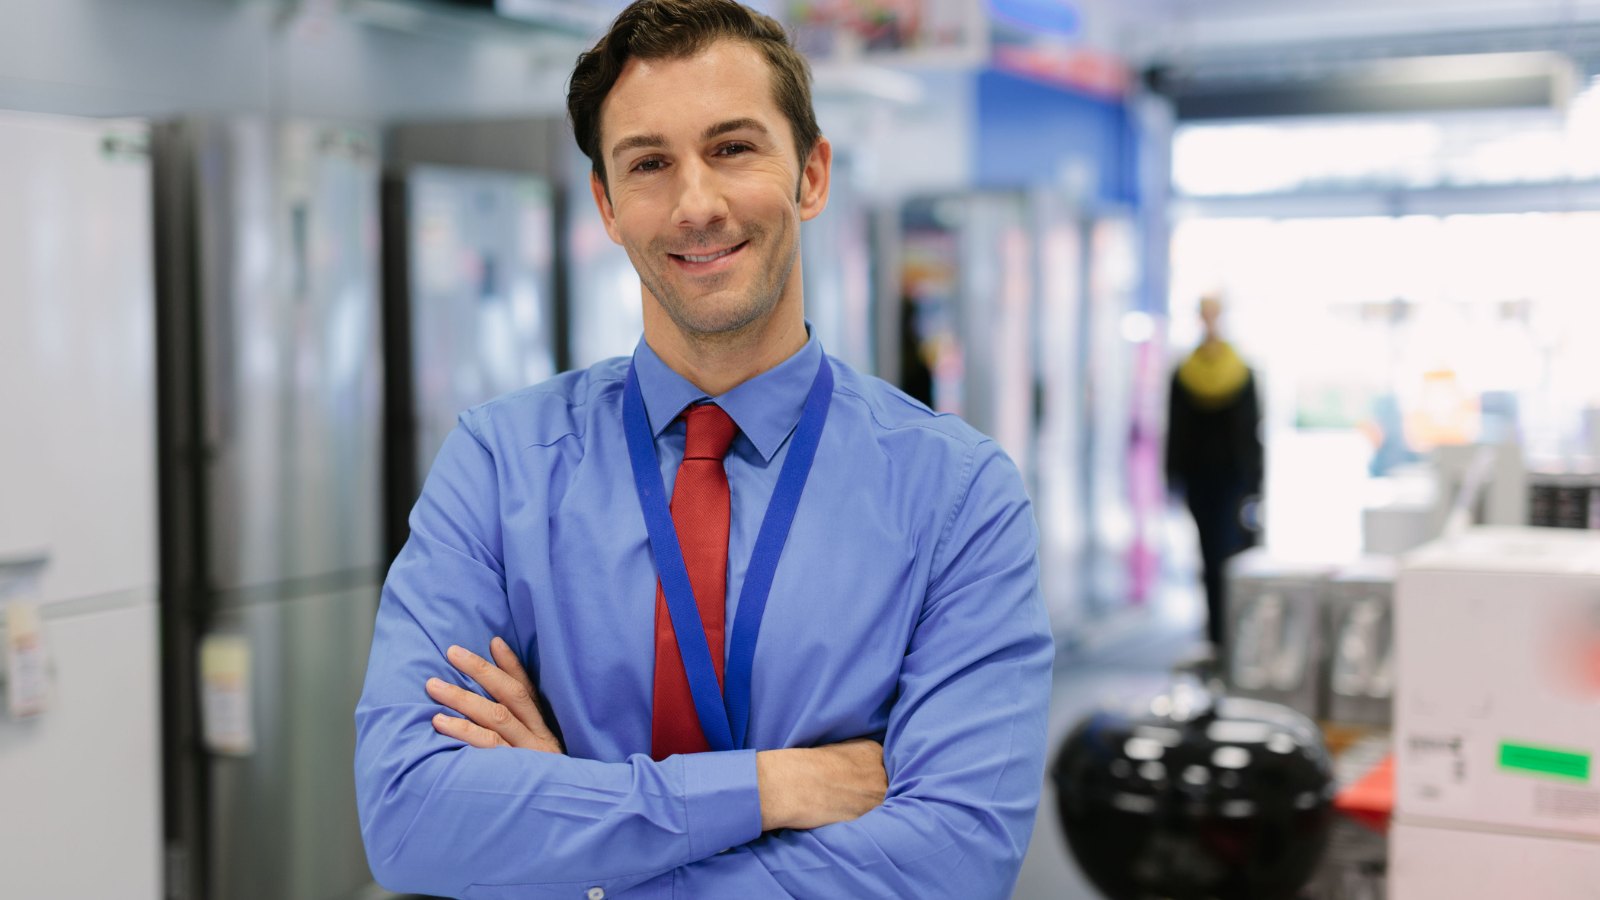 Retail Manager Level 4